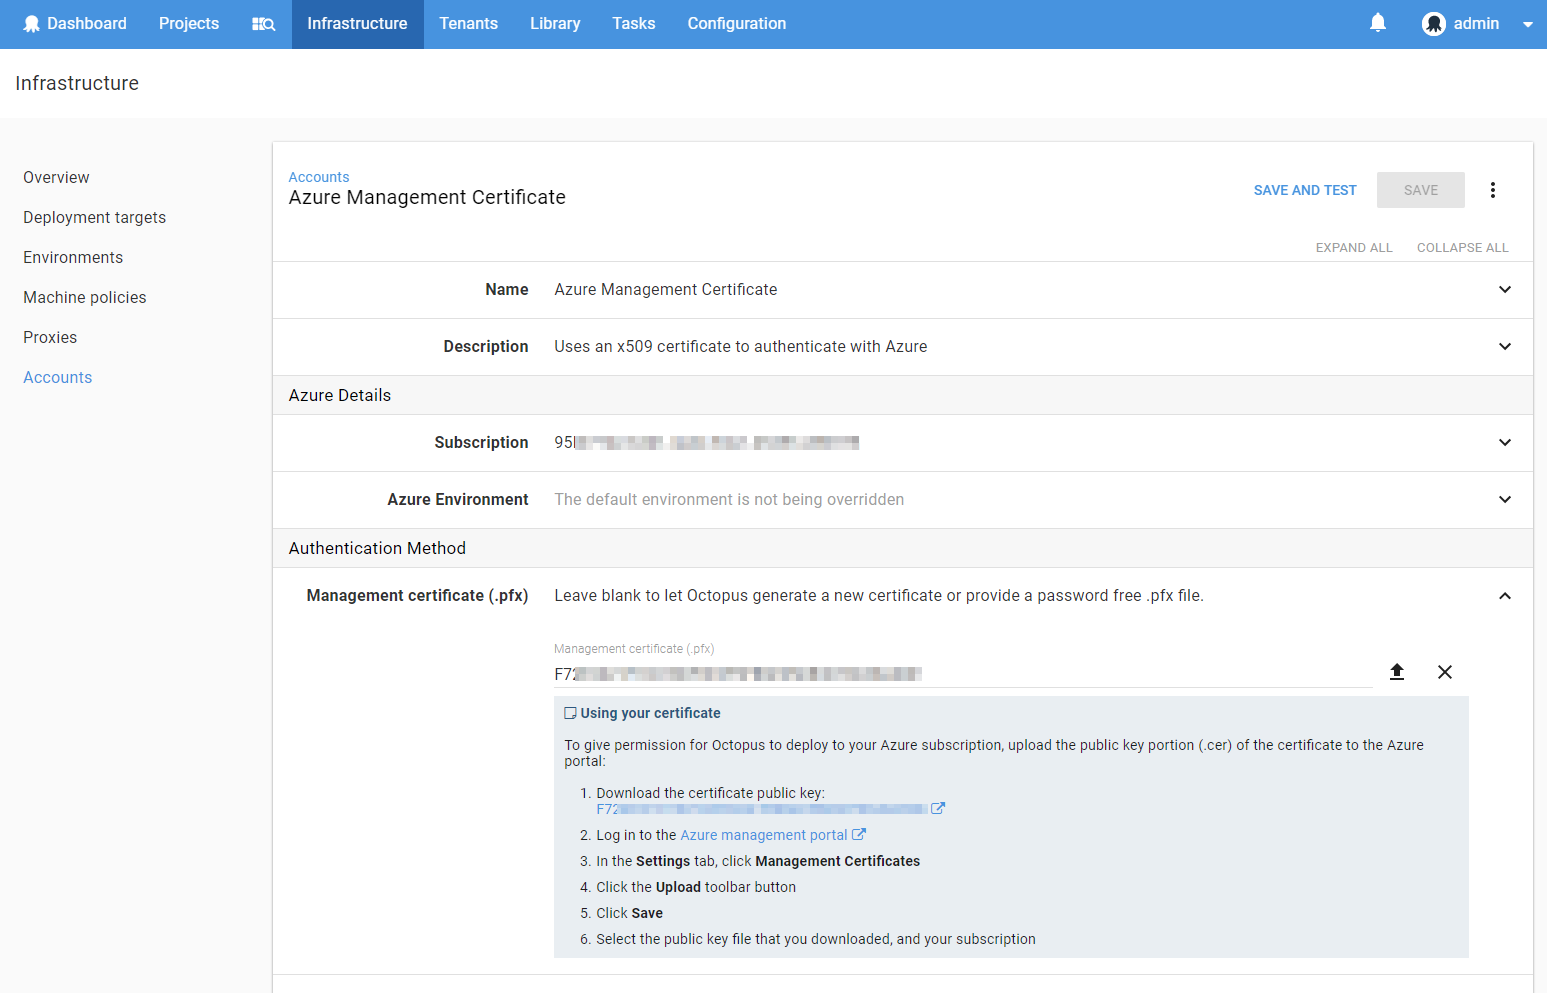 Download management certificate